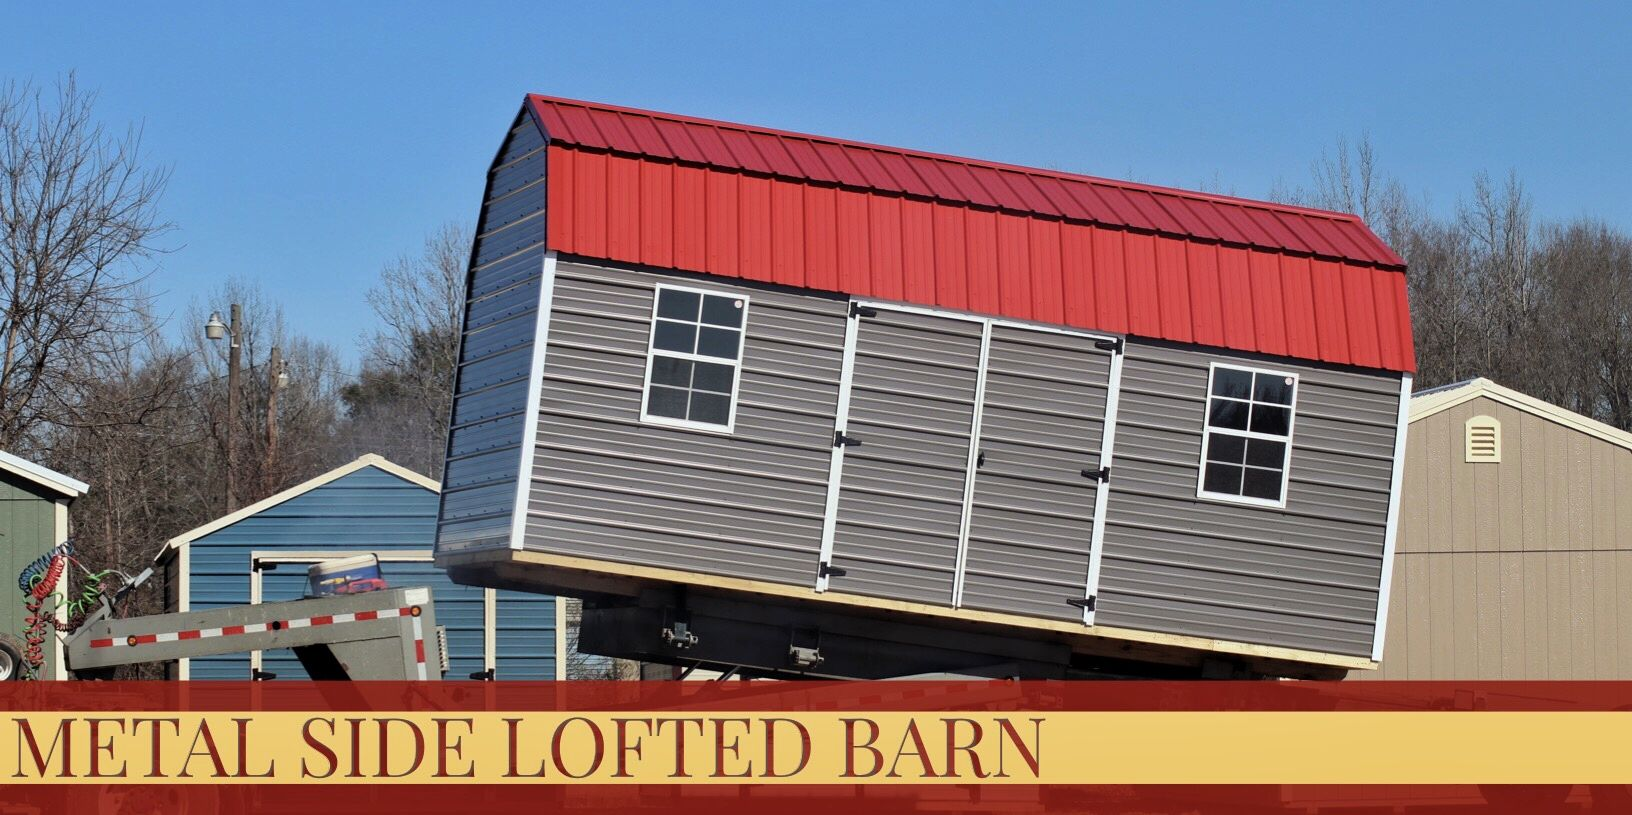 Best One Of Our Metal Side Lofted Barns With Yet Again Our Nice 400 x 300